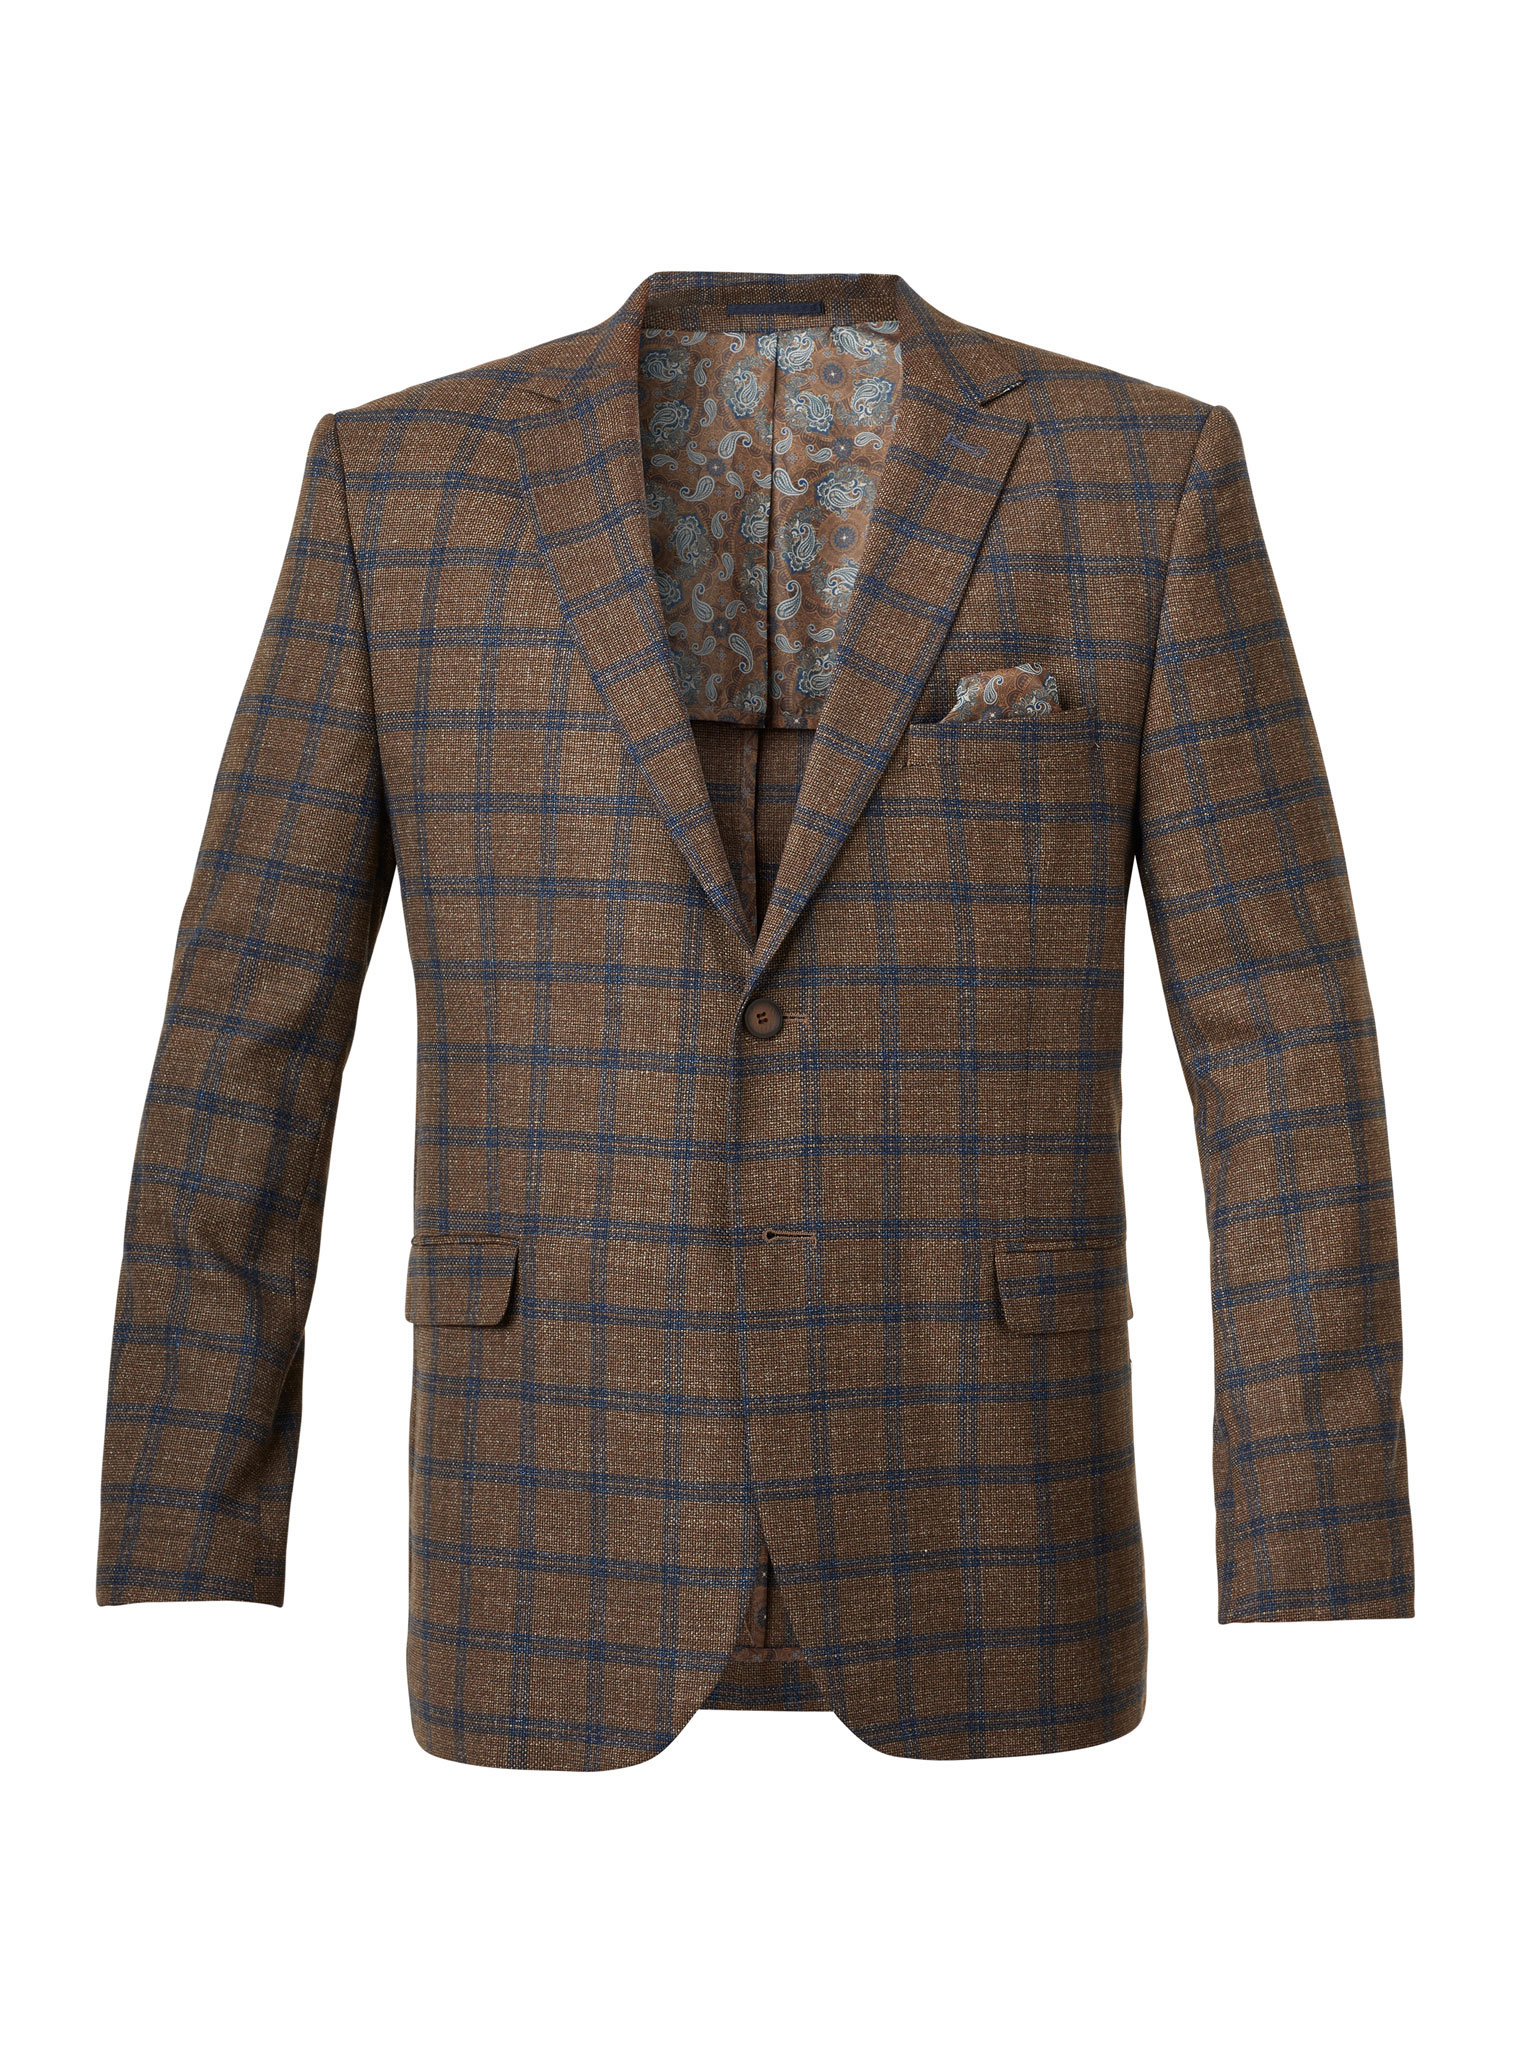 SPRTCOAT-BROWN PLAID